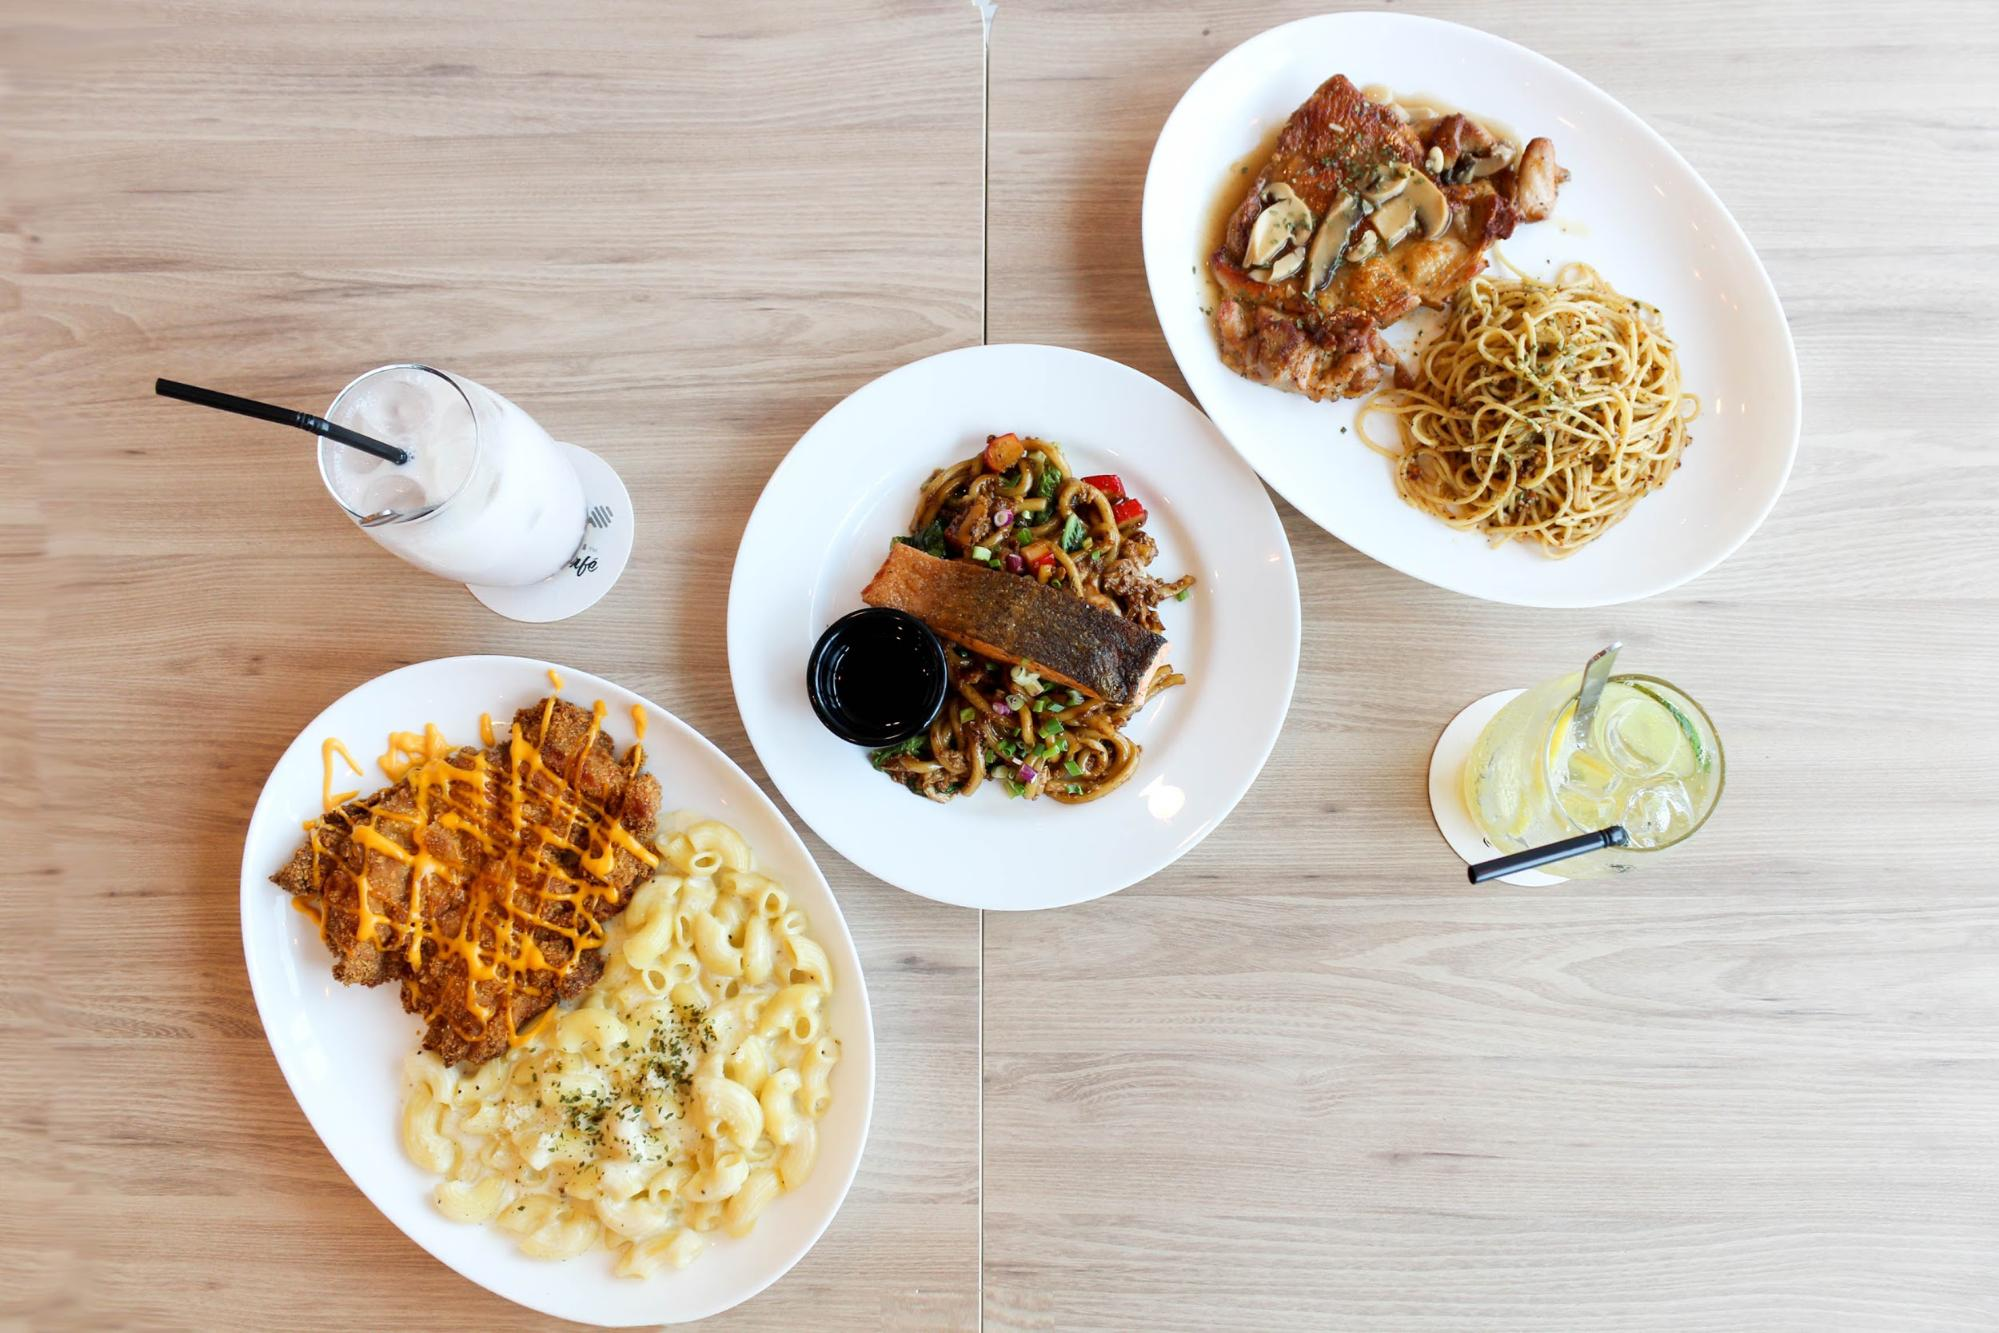 Food at HyfeCafe